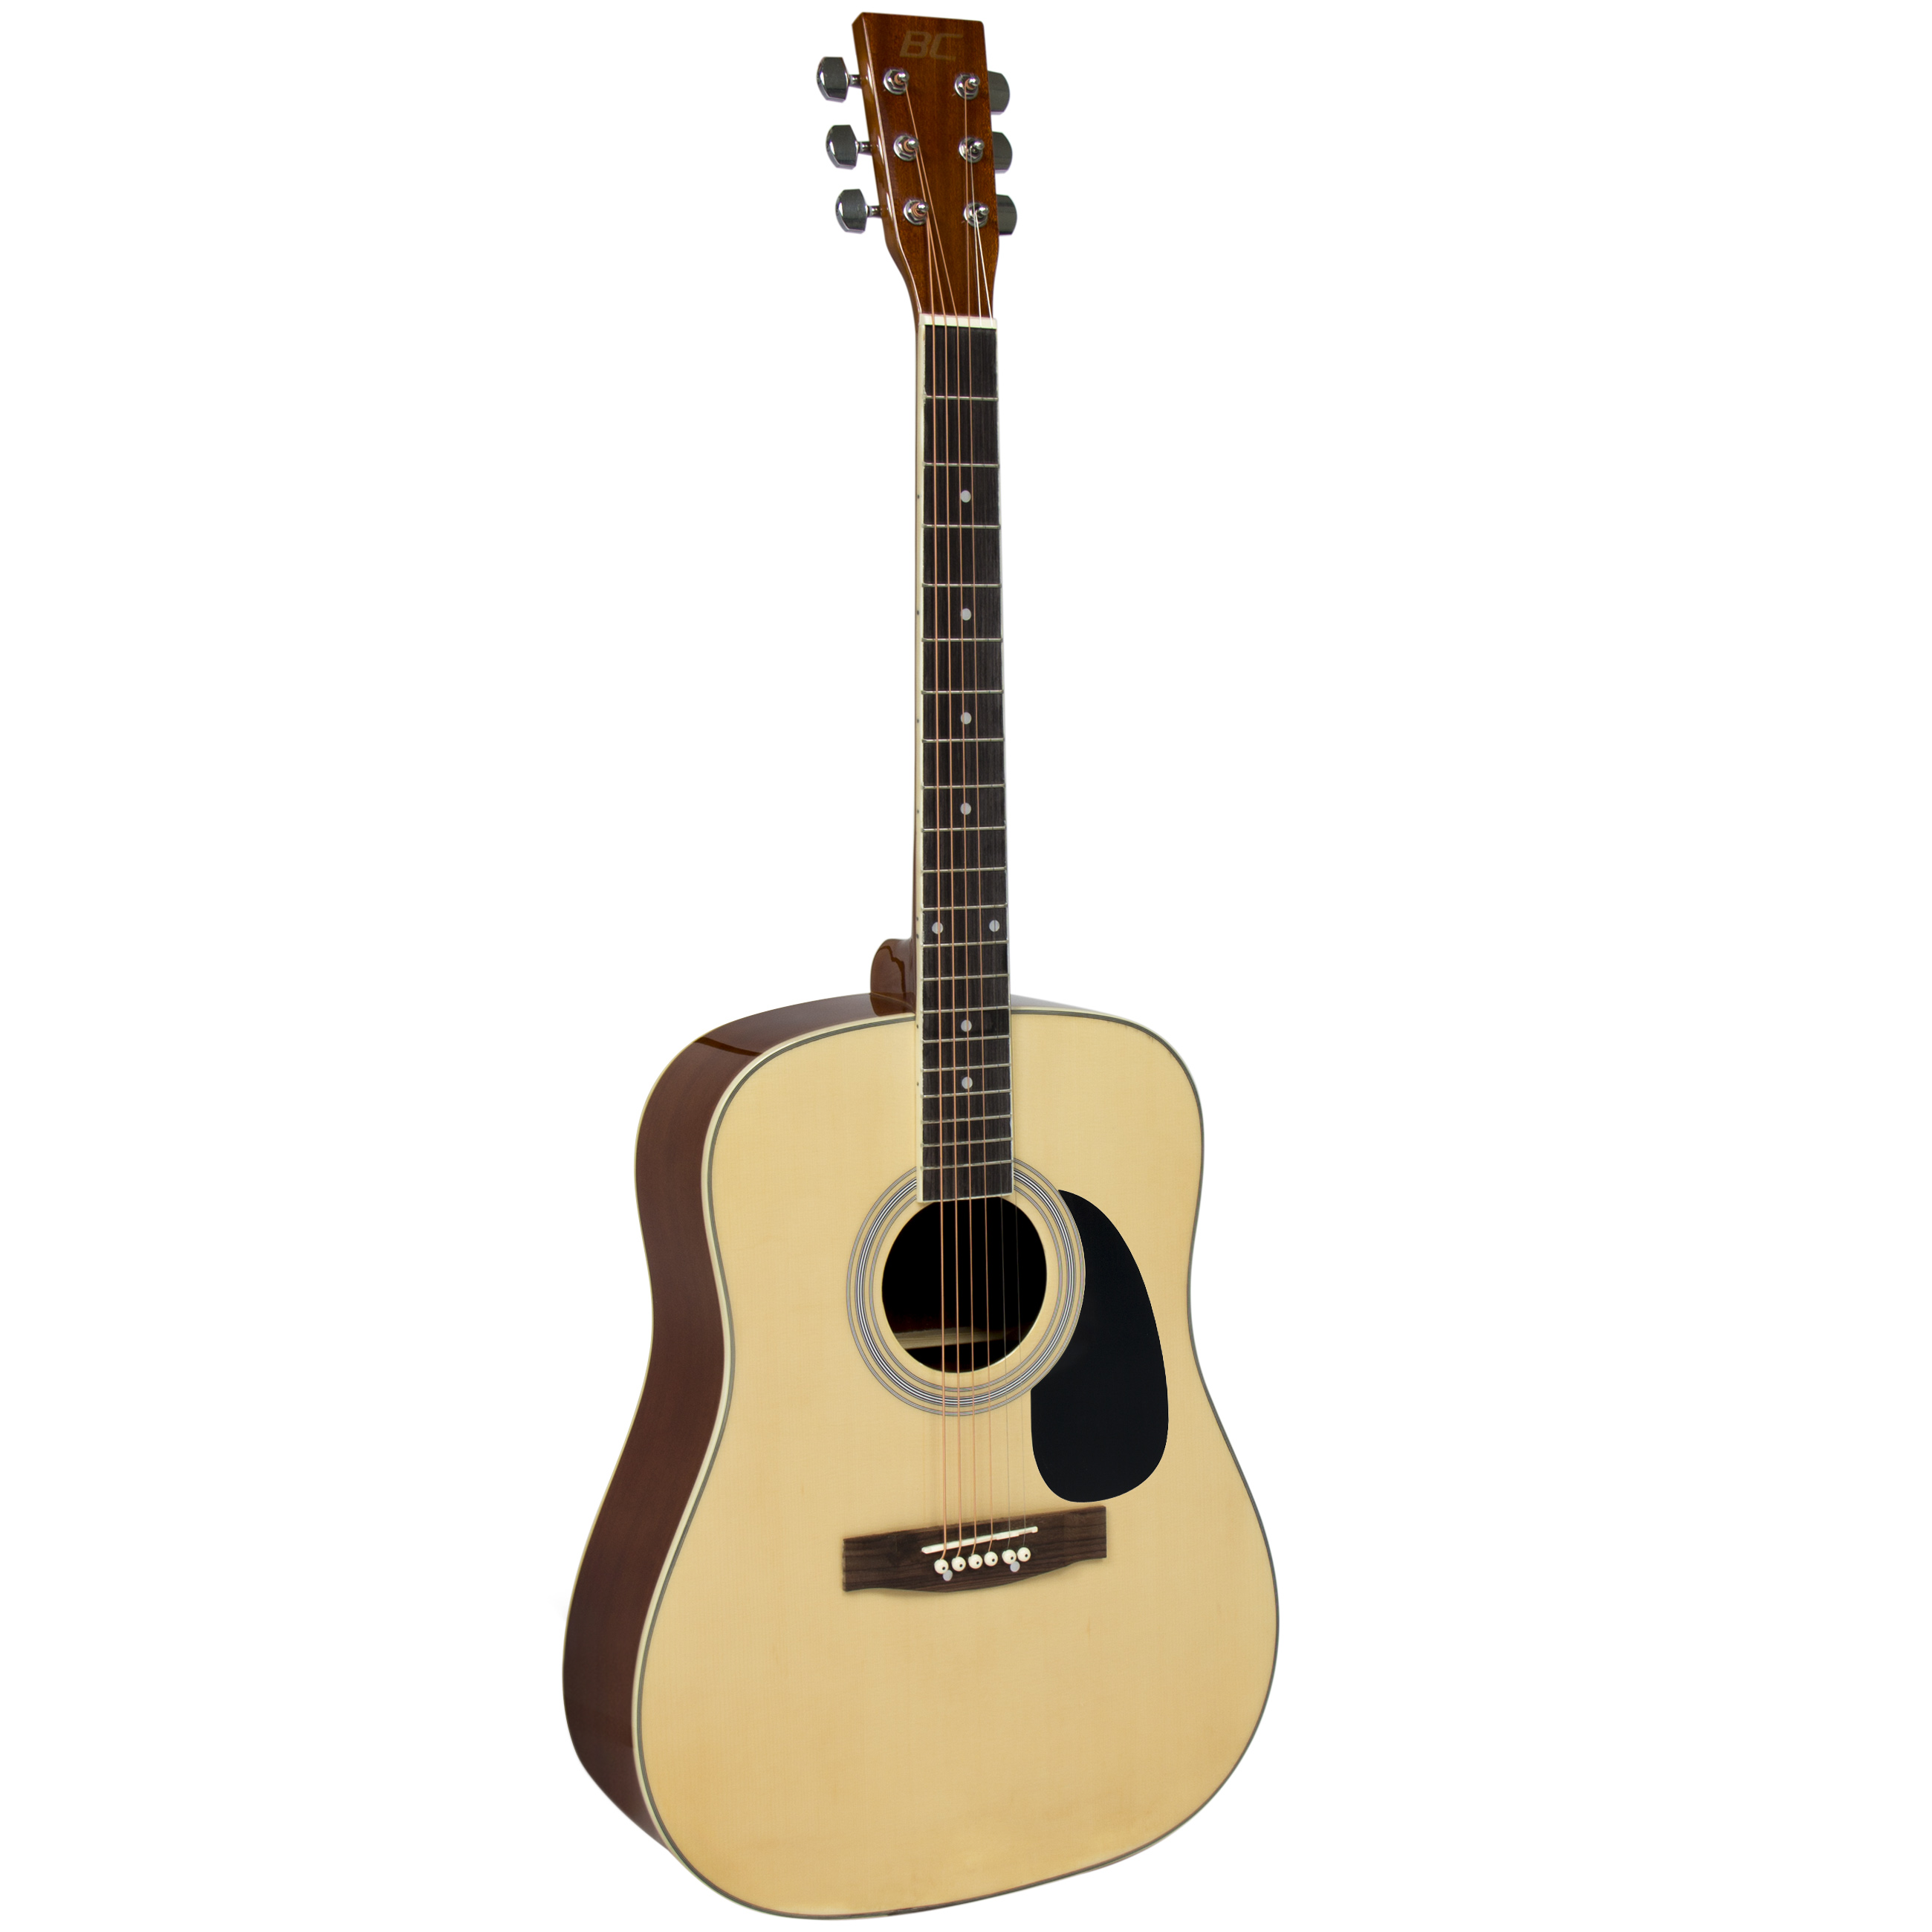 acoustic guitar 41 full size natural includes guitar case strap and more. Black Bedroom Furniture Sets. Home Design Ideas